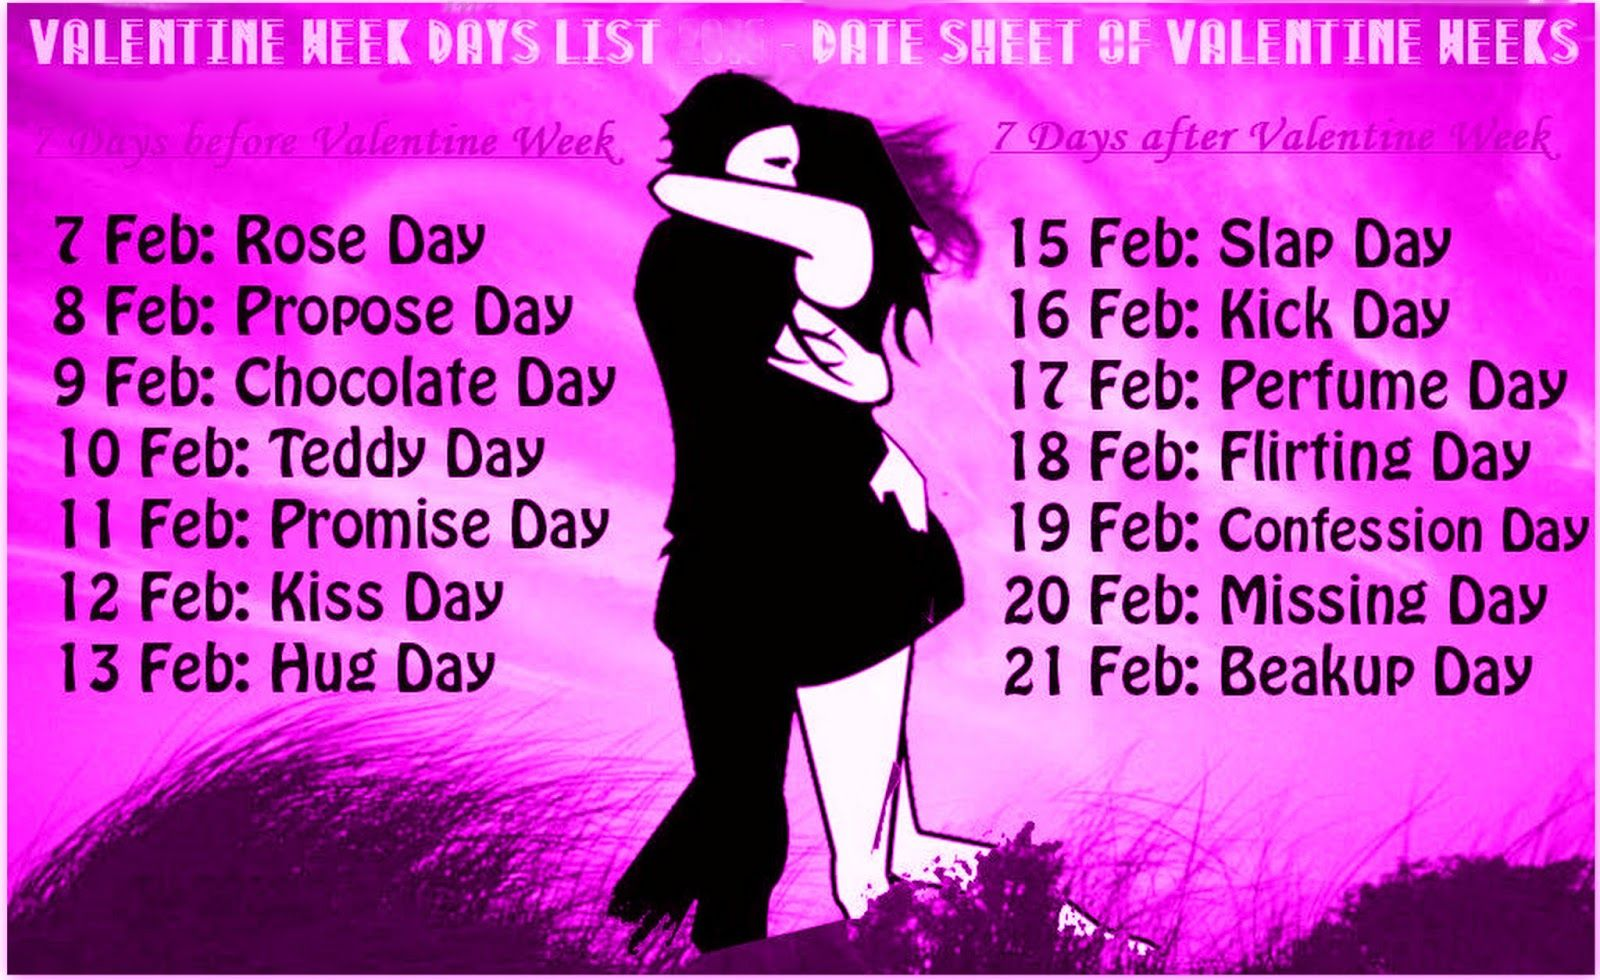 Pin By Komal Pandey On Stuff To Buy Valentine Day Week Valentine Day Week List Valentine Quotes